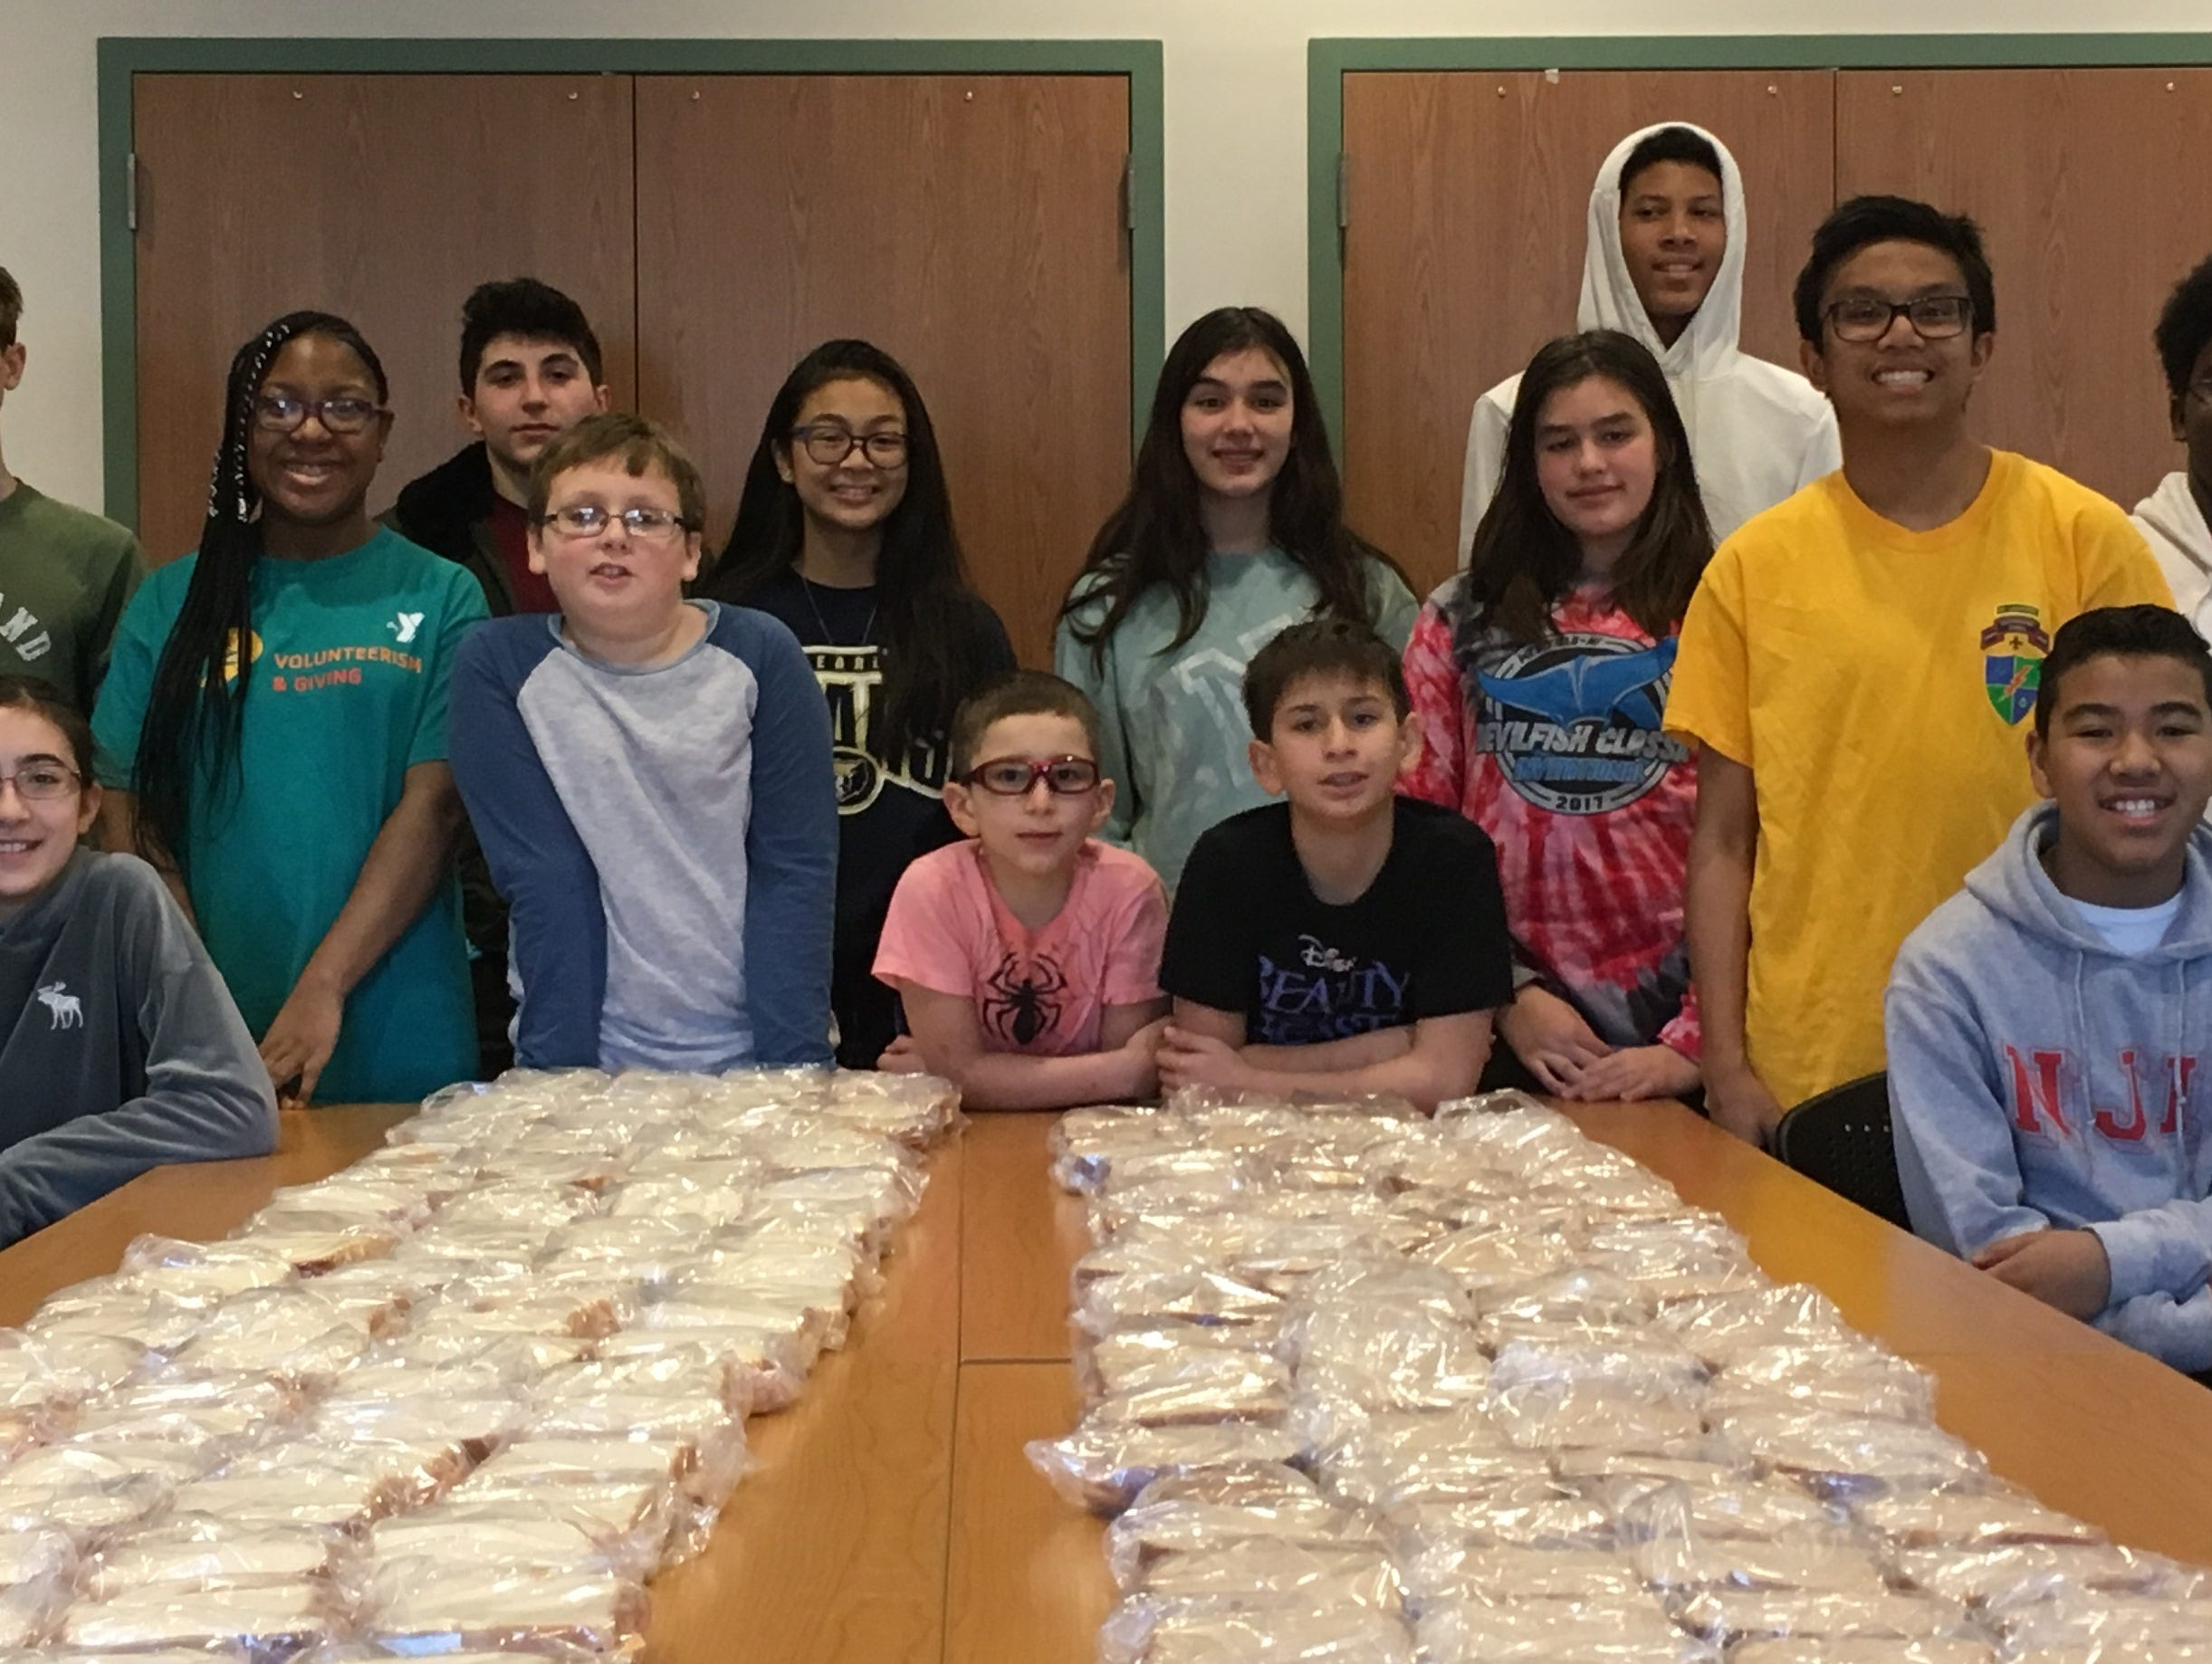 Union County 4-H Clubs.